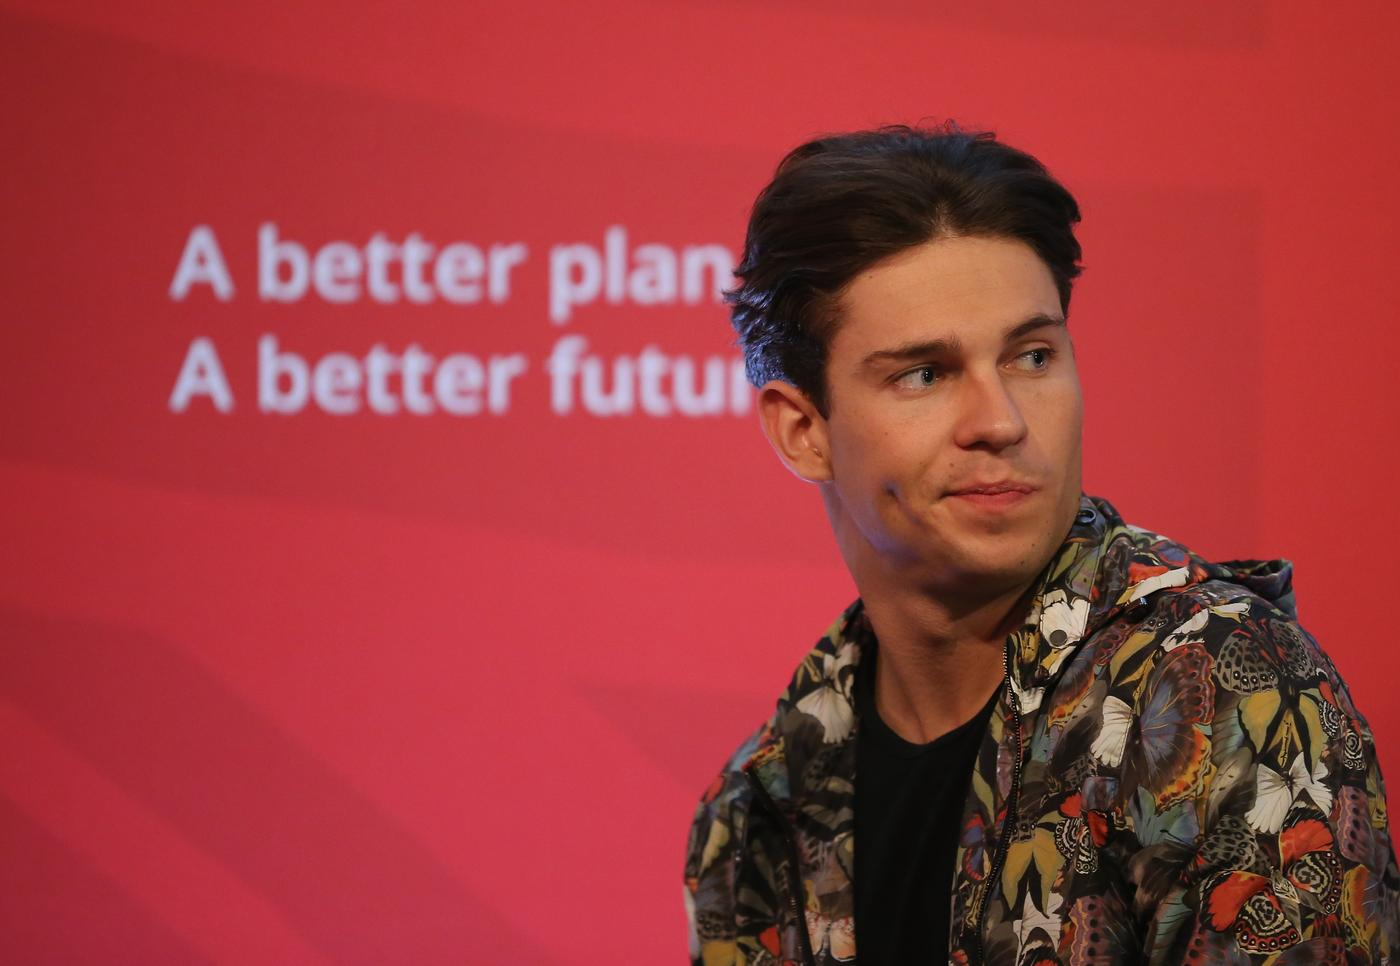 TOWIE's Joey Essex reckons politicians should start wearing onesies